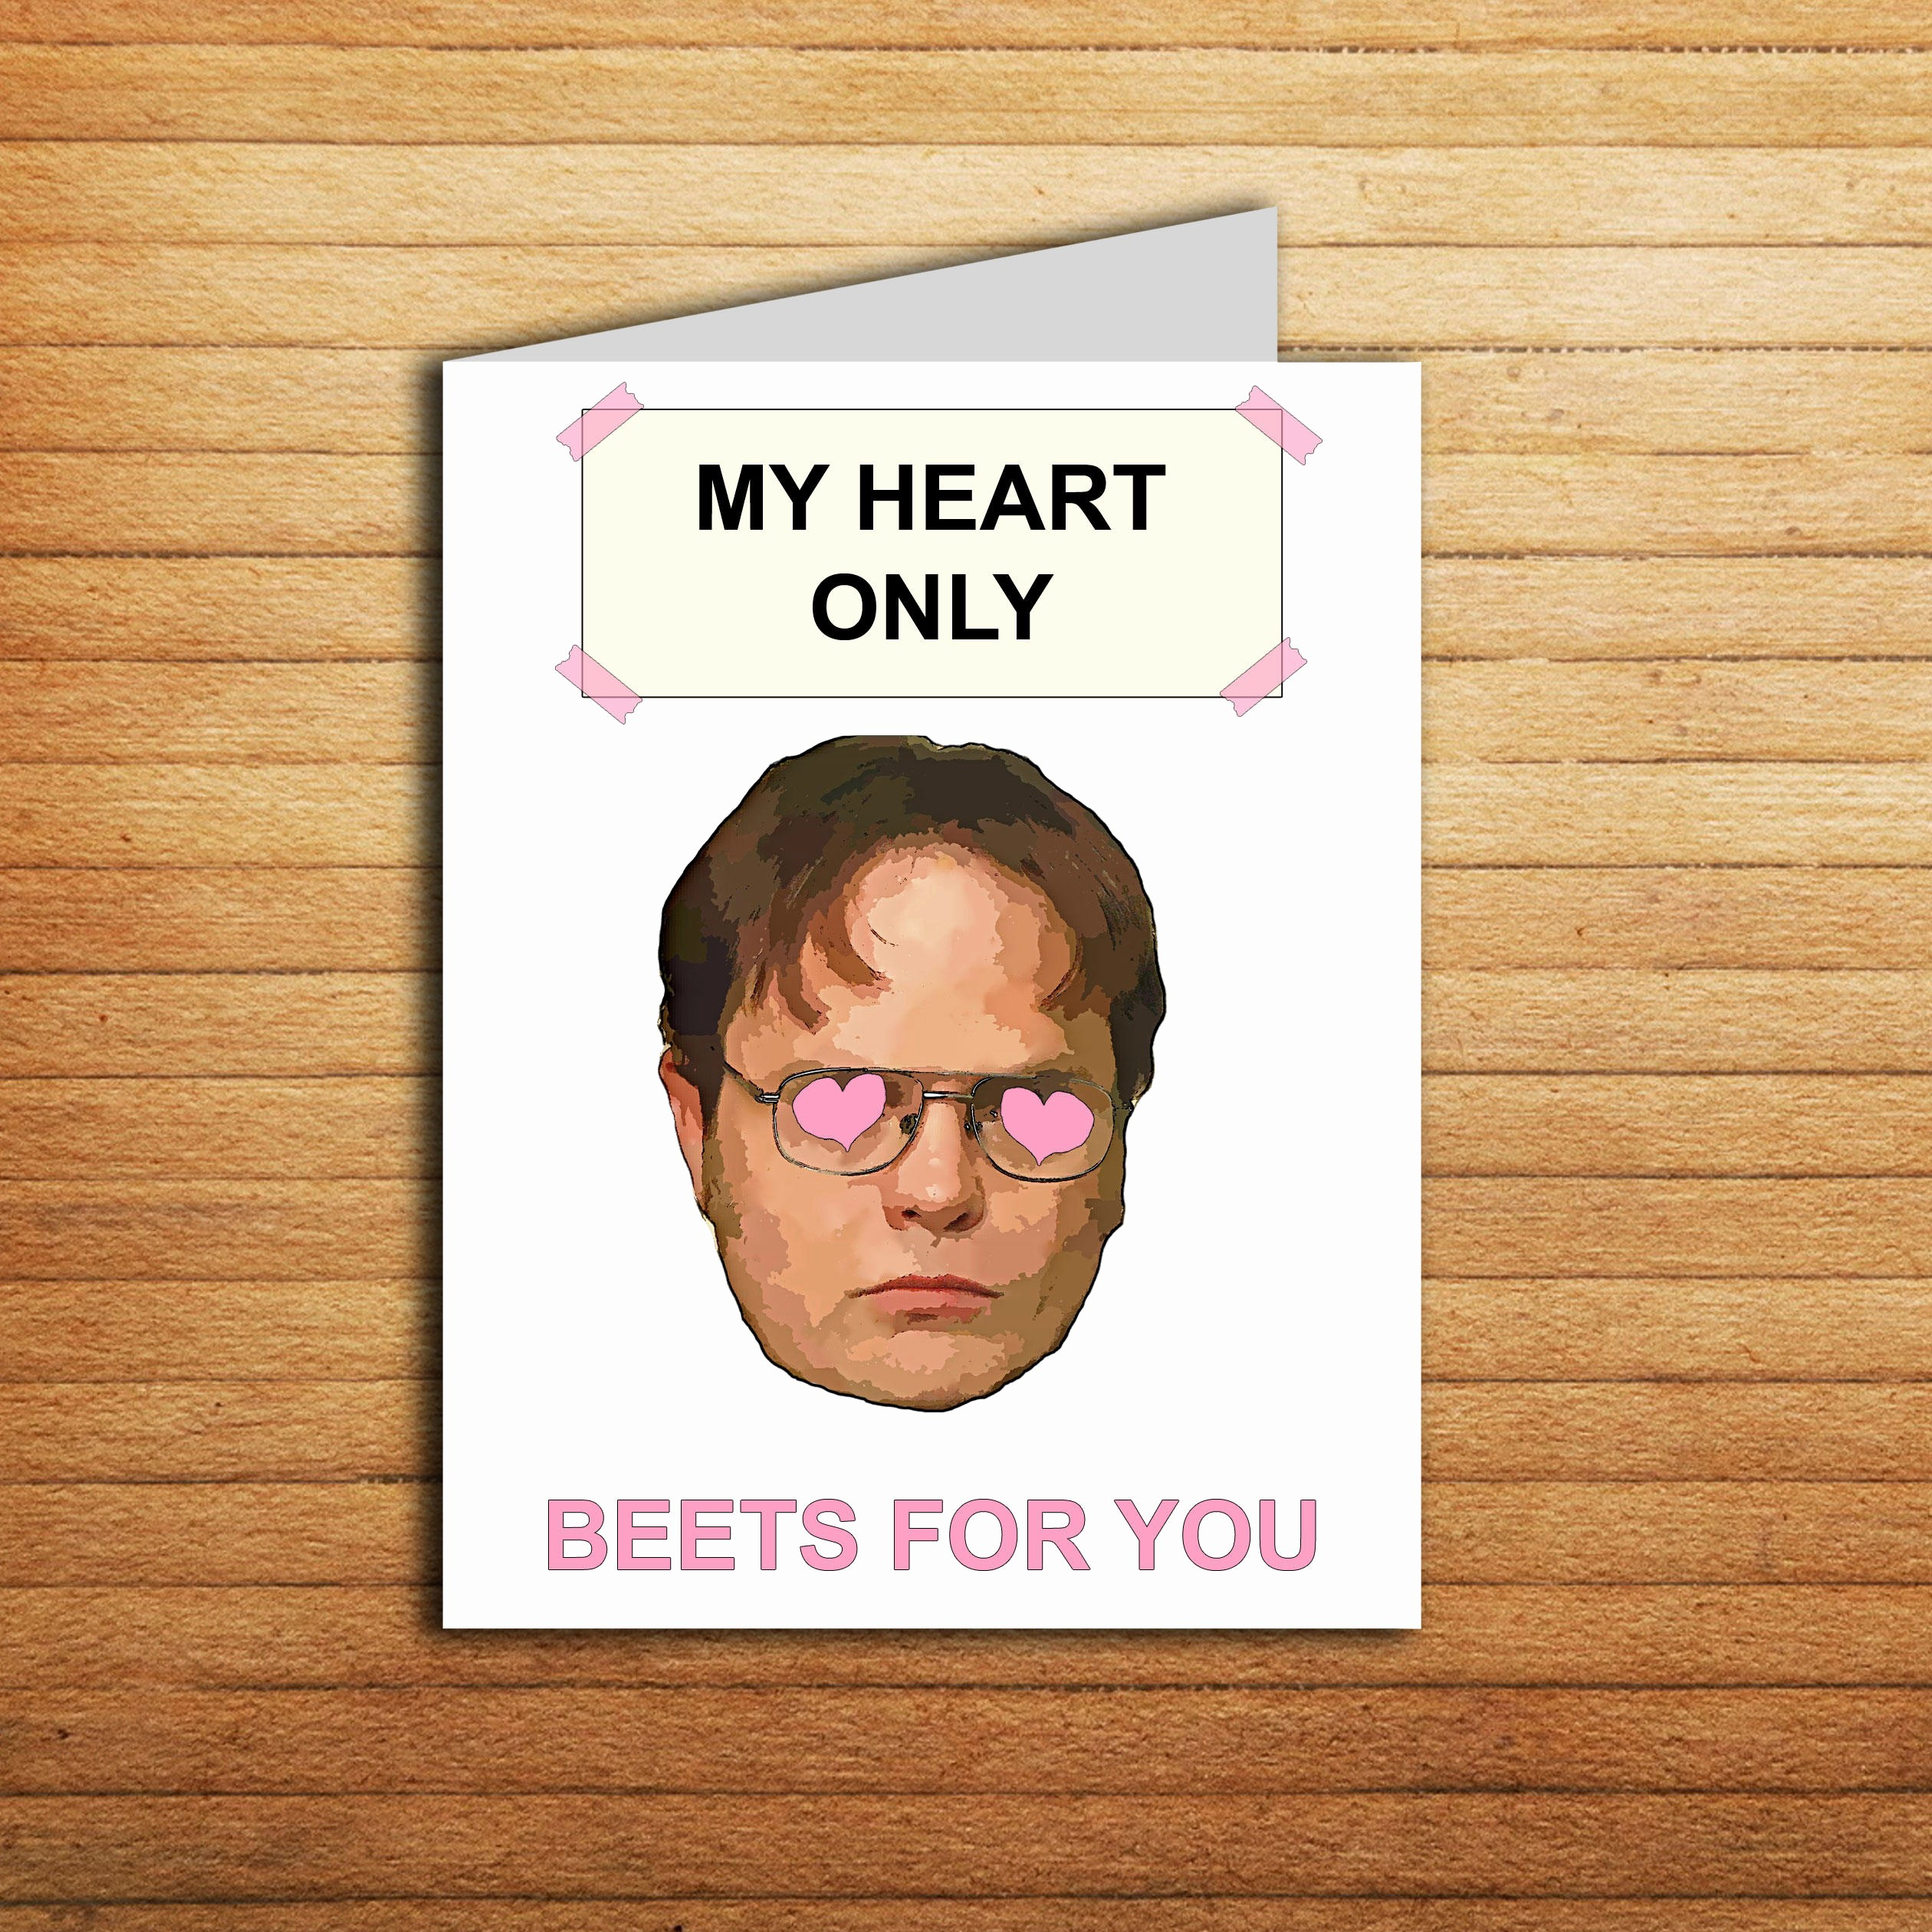 The Office Valentines Day Card Elegant the Fice Valentines Day Card Dwight Schrute Beet Valentine